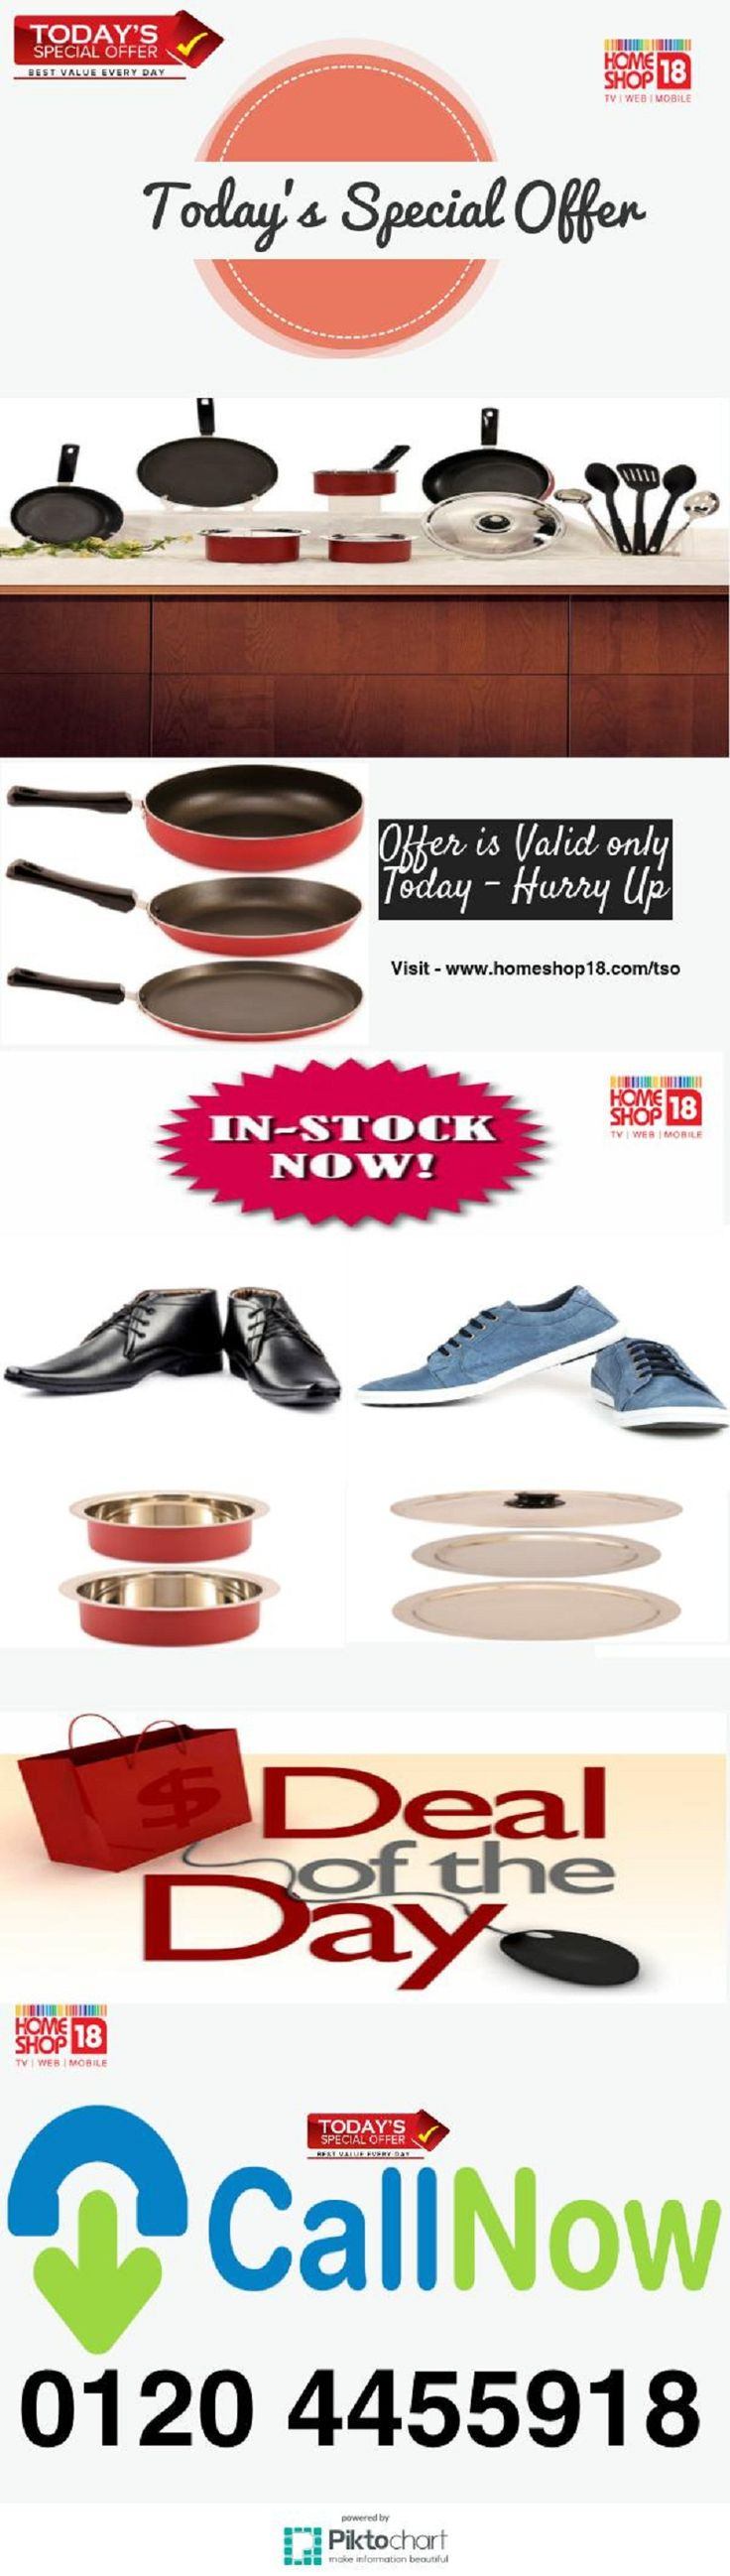 Price cut limited time offer shop now for the best selection hurry - Get Special Offer By Homeshop18 With Huge Discount Today Get Free Shipping And Best Cash